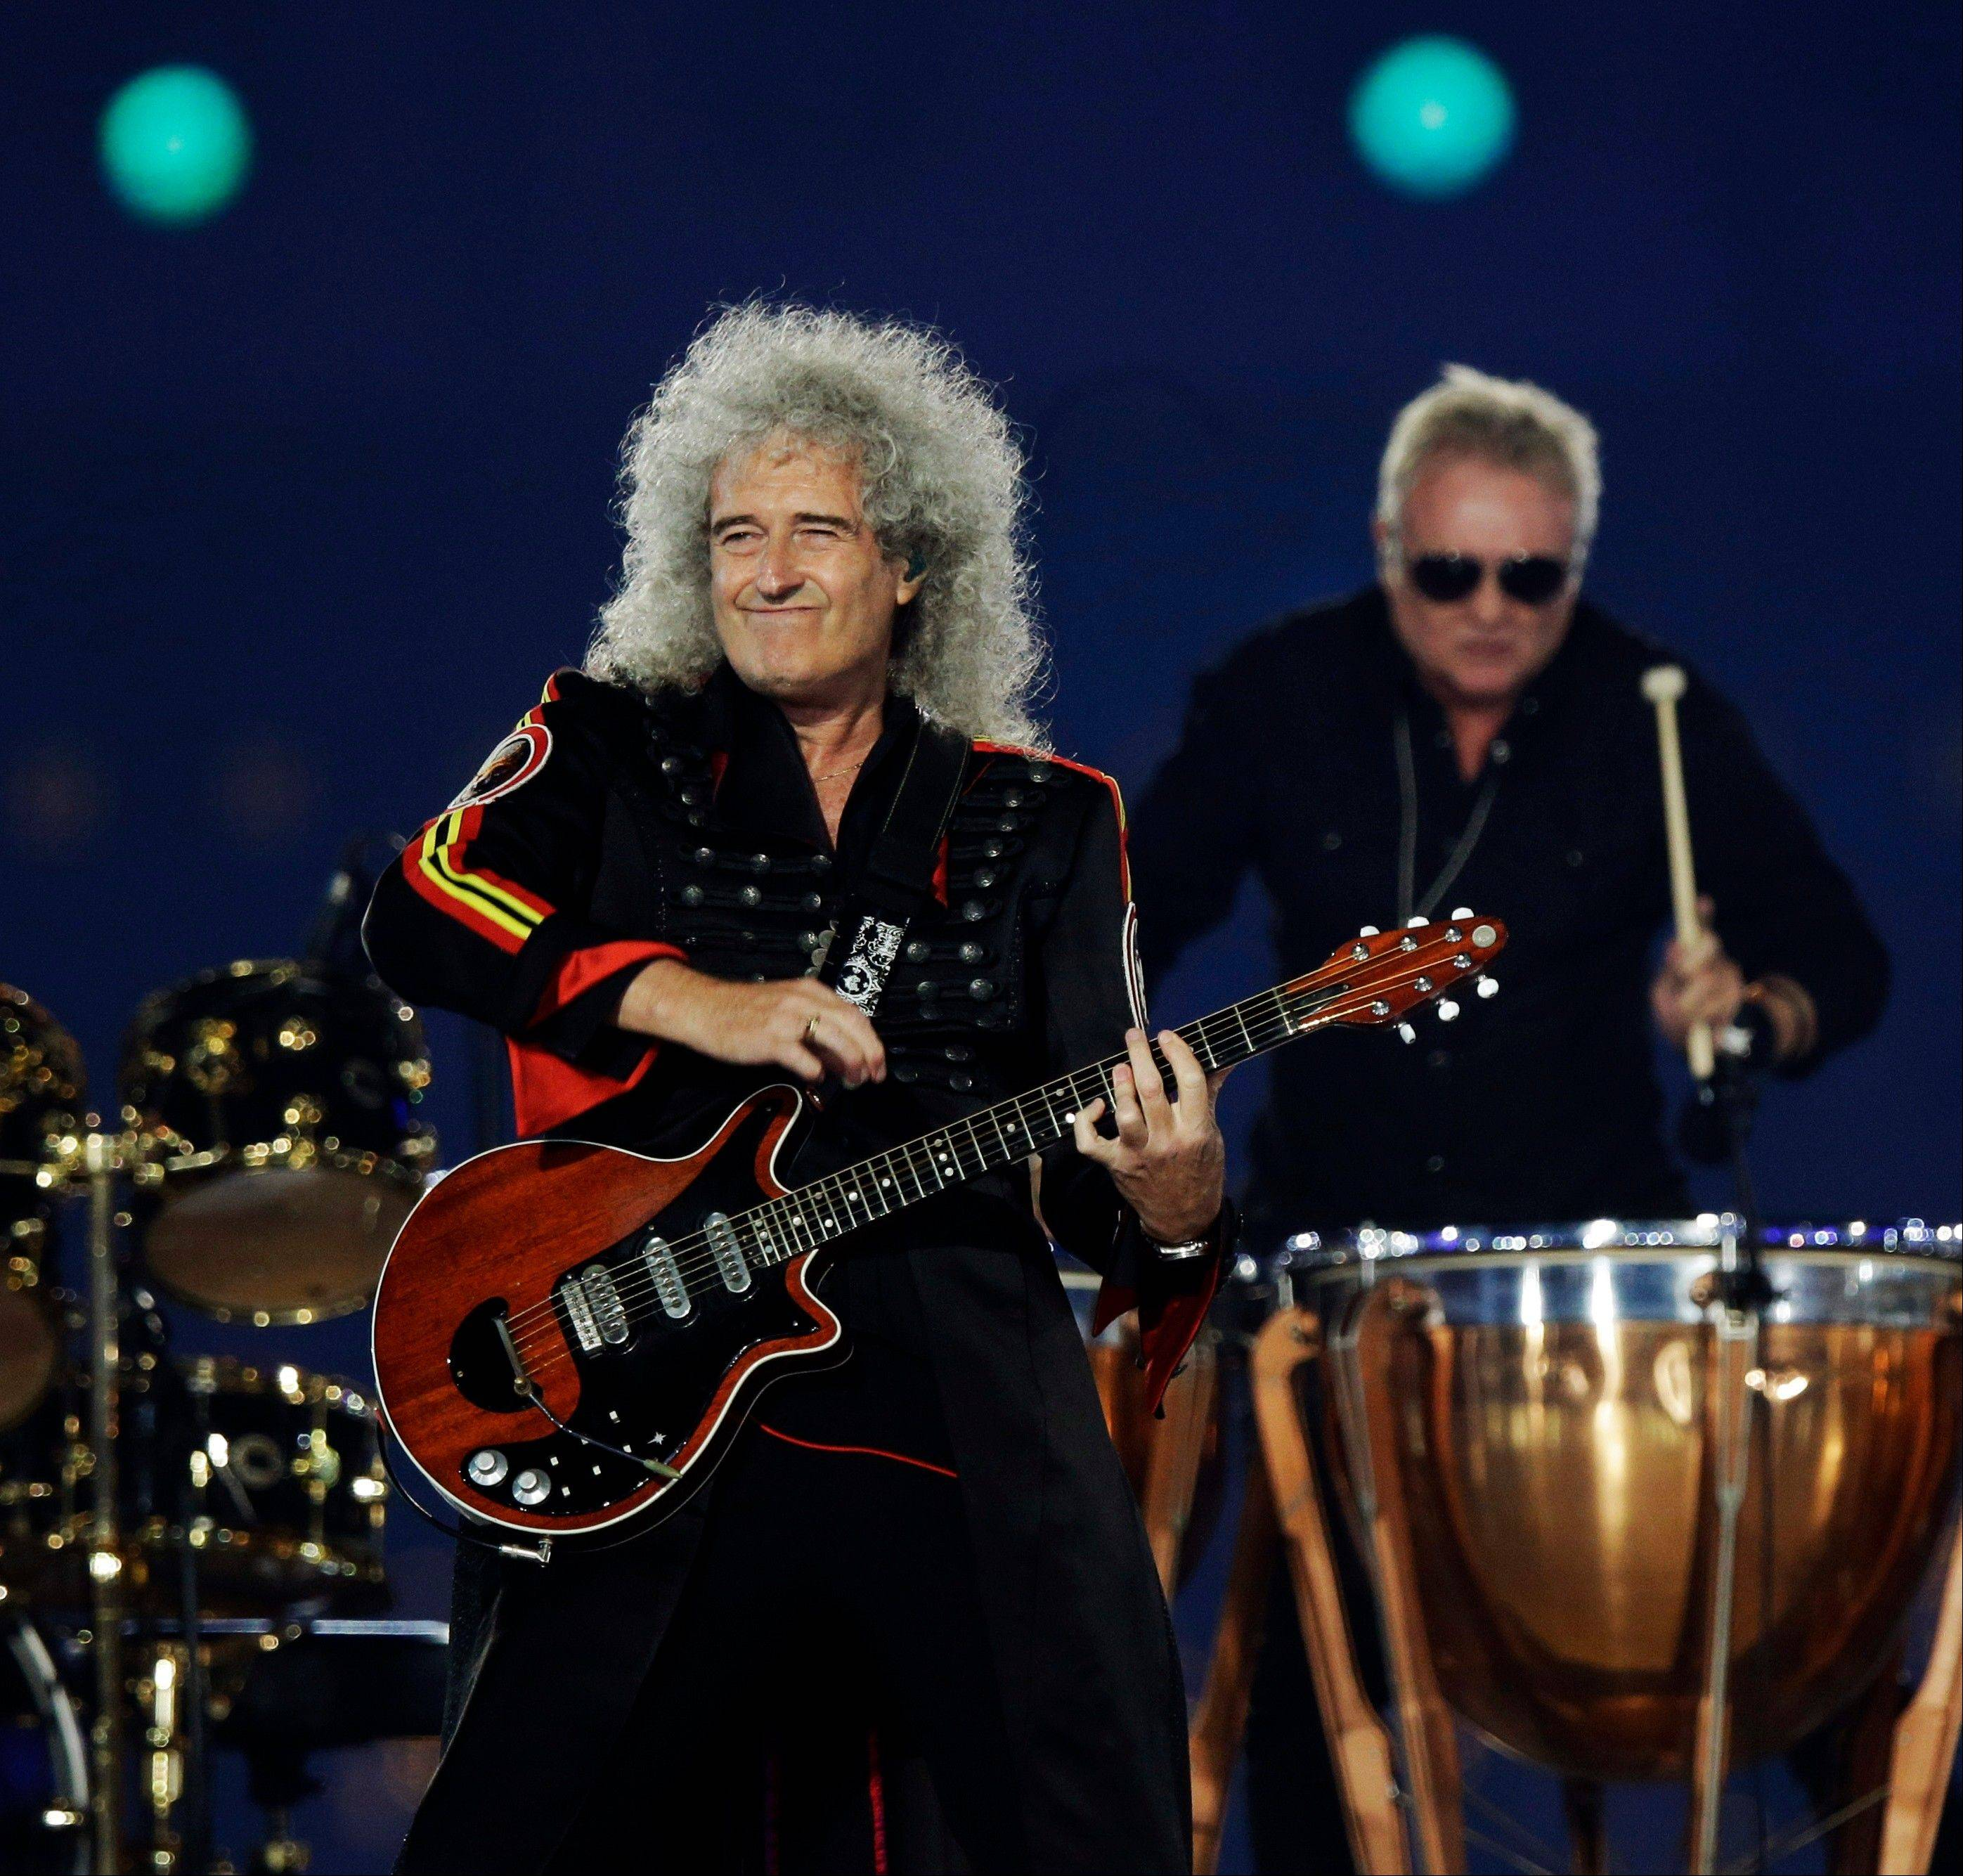 Queen guitarist Brian May performs during the Closing Ceremony at the 2012 Summer Olympics, Sunday, Aug. 12, 2012, in London.